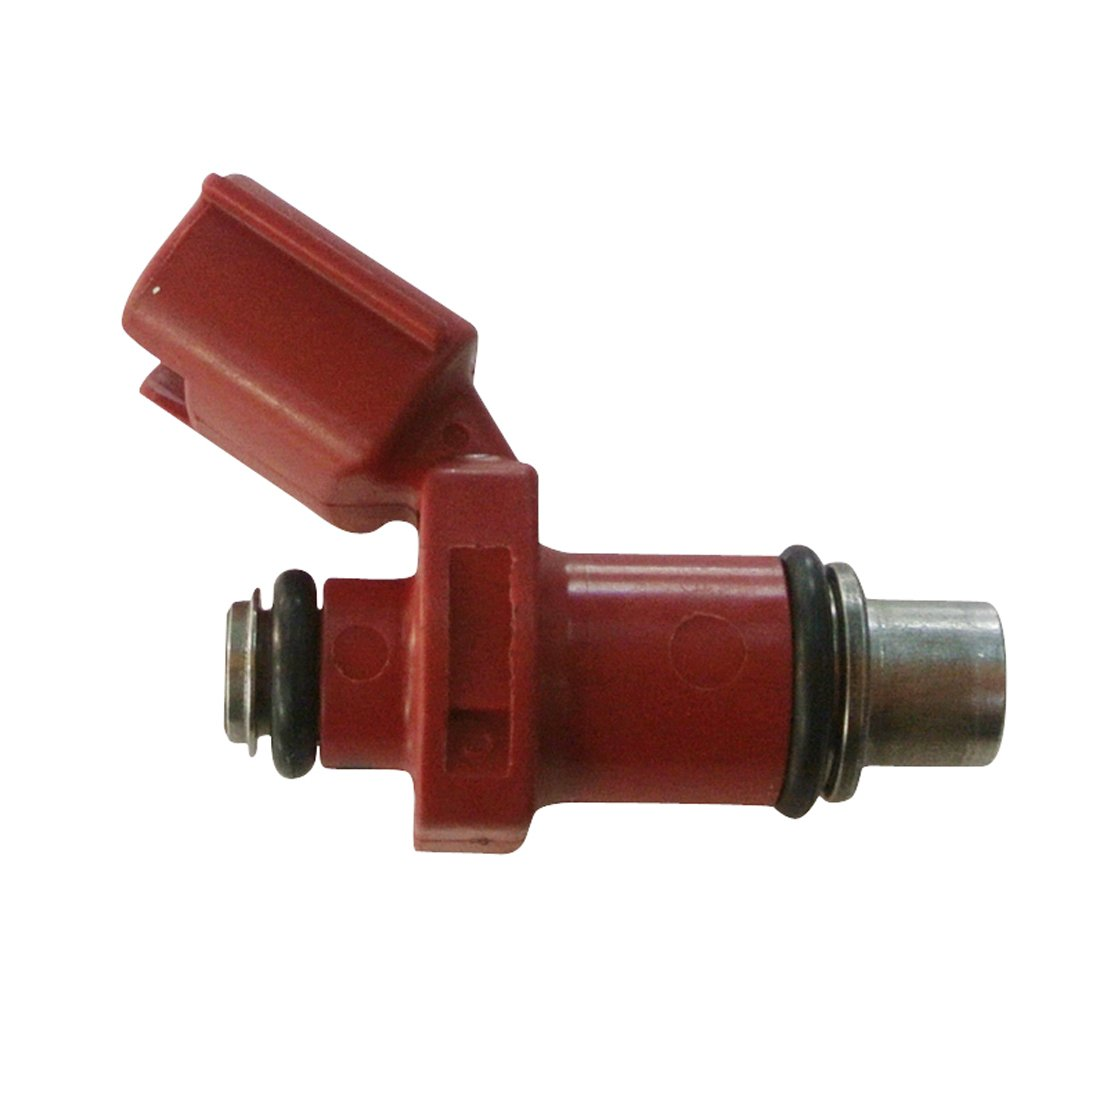 JRL Fuel Injector 6D8-13761-00-00 Fit Yamaha OutBoard 80 BEL 75 to 90 HP 4 Stroke Huang Machinery